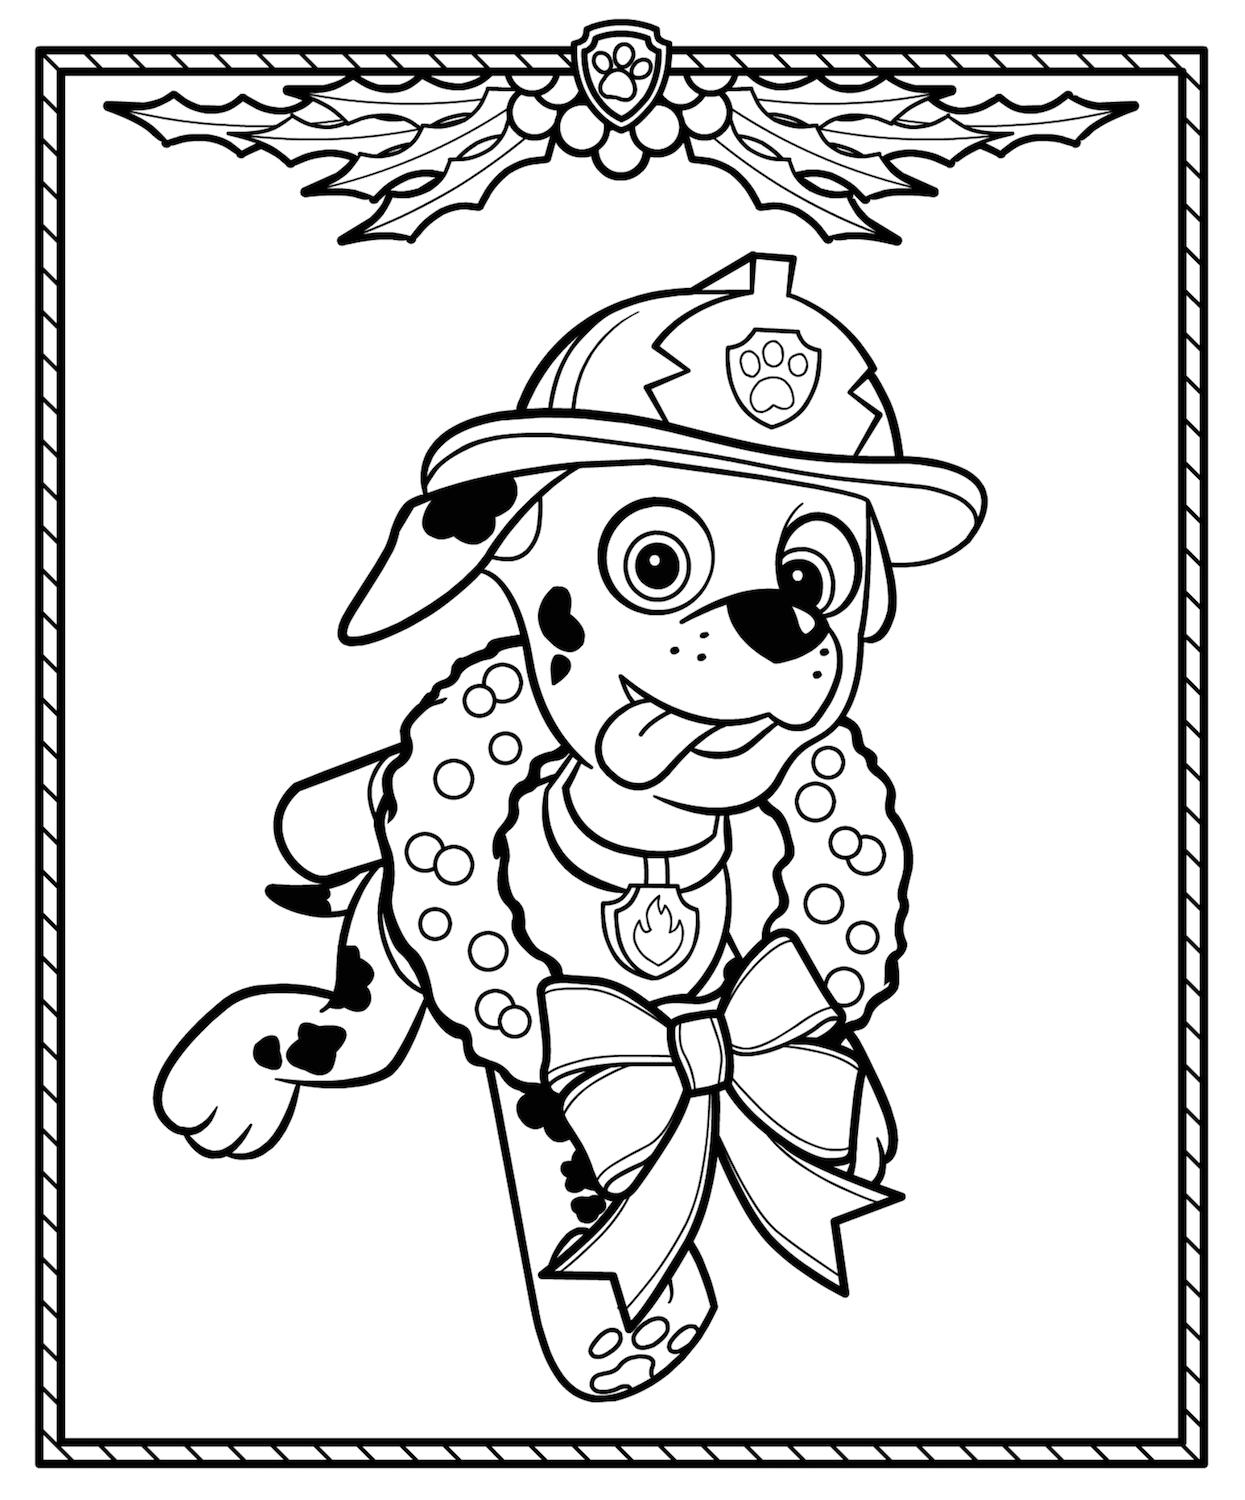 Christmas Coloring Pages Paw Patrol Coloring Paw Patrol Christmas Free Christmas Coloring Pages